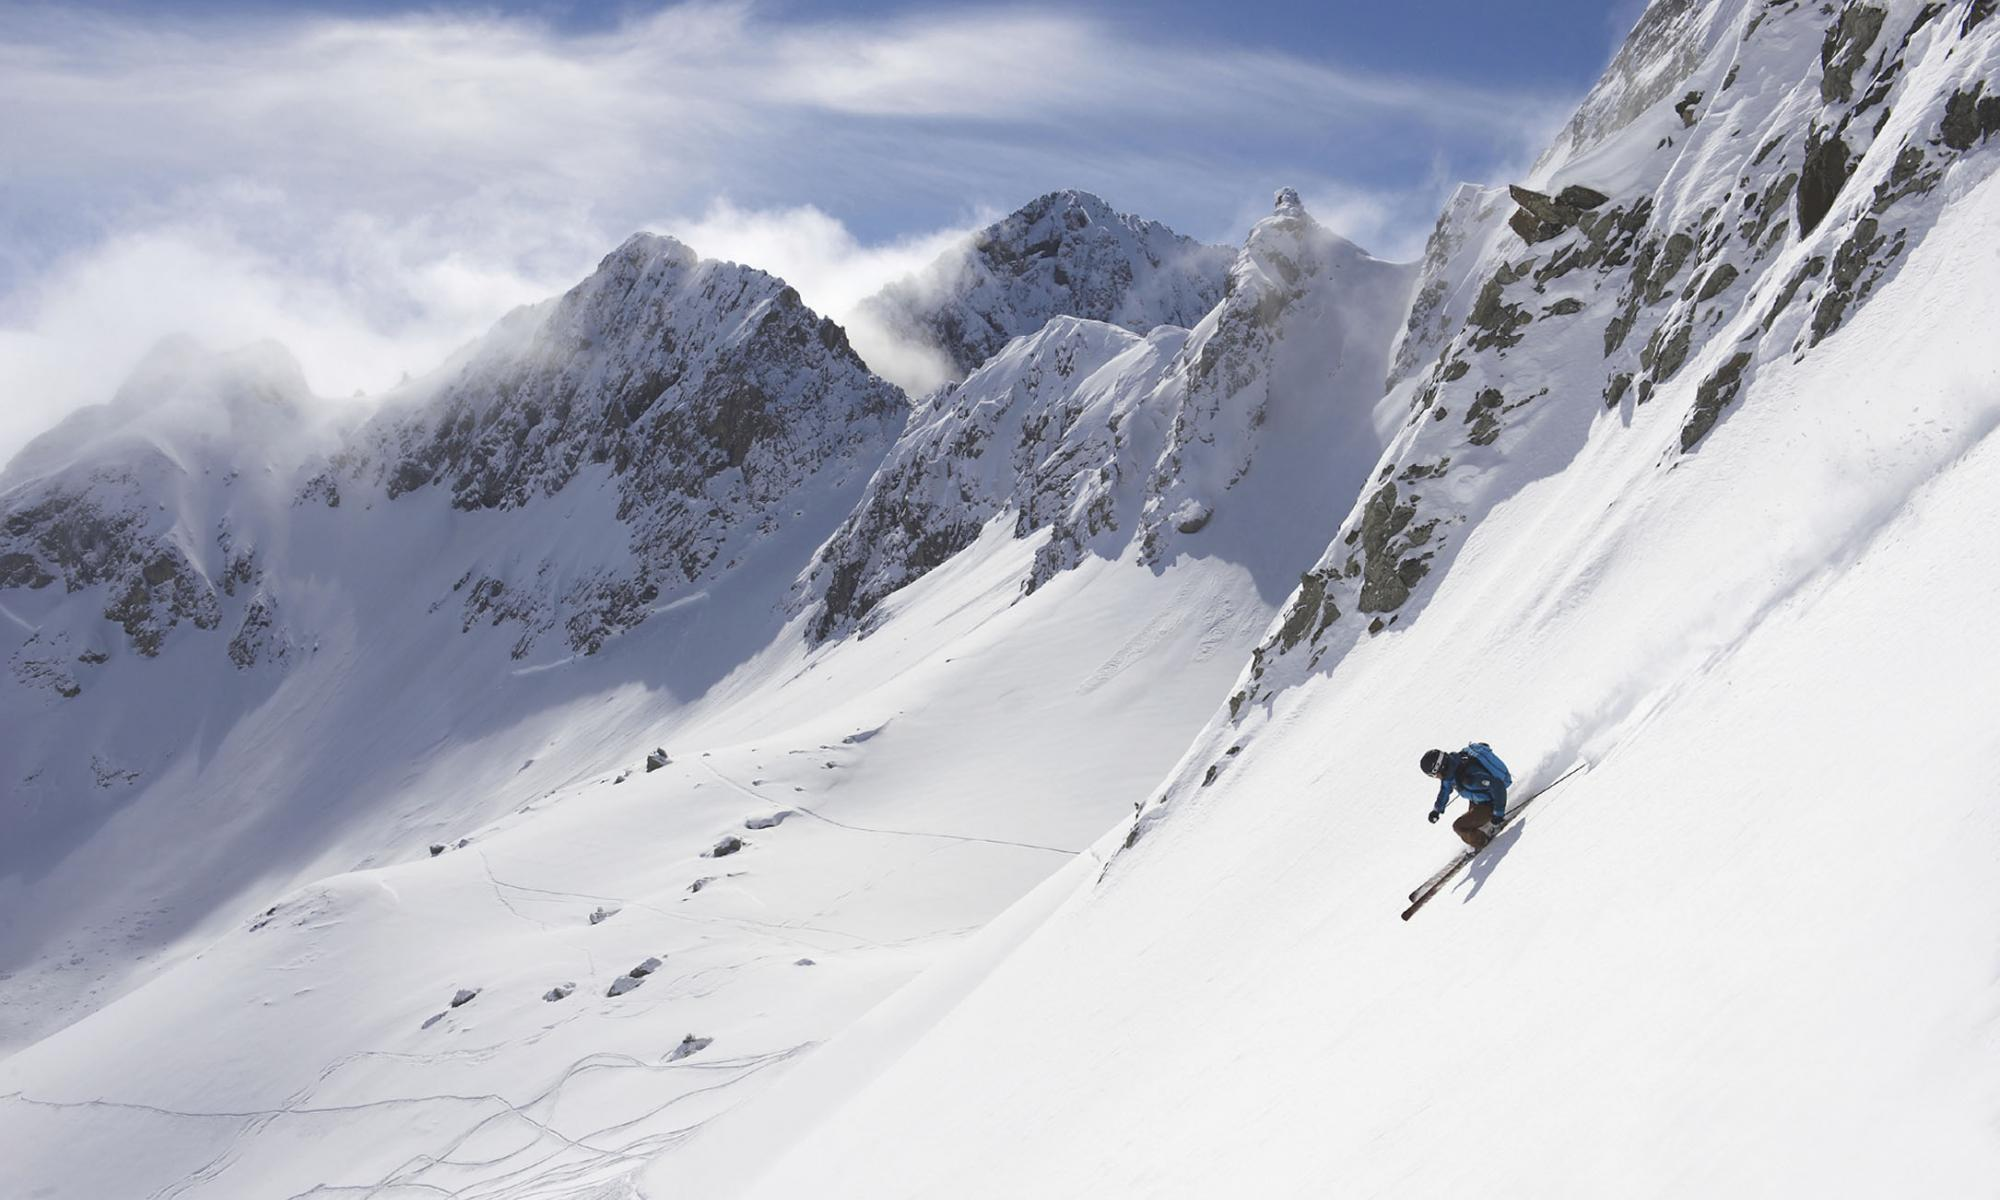 Les Trois Vallées, an amazing expanse of pistes and off-pistes to challenge any type of skier. Photo: Les Trois Vallées.Epic Pass expands European Access in World-Class Resort in France and Italy: Les 3 Vallées in France and Skirama Dolomiti Adamello Brenta in Italy.